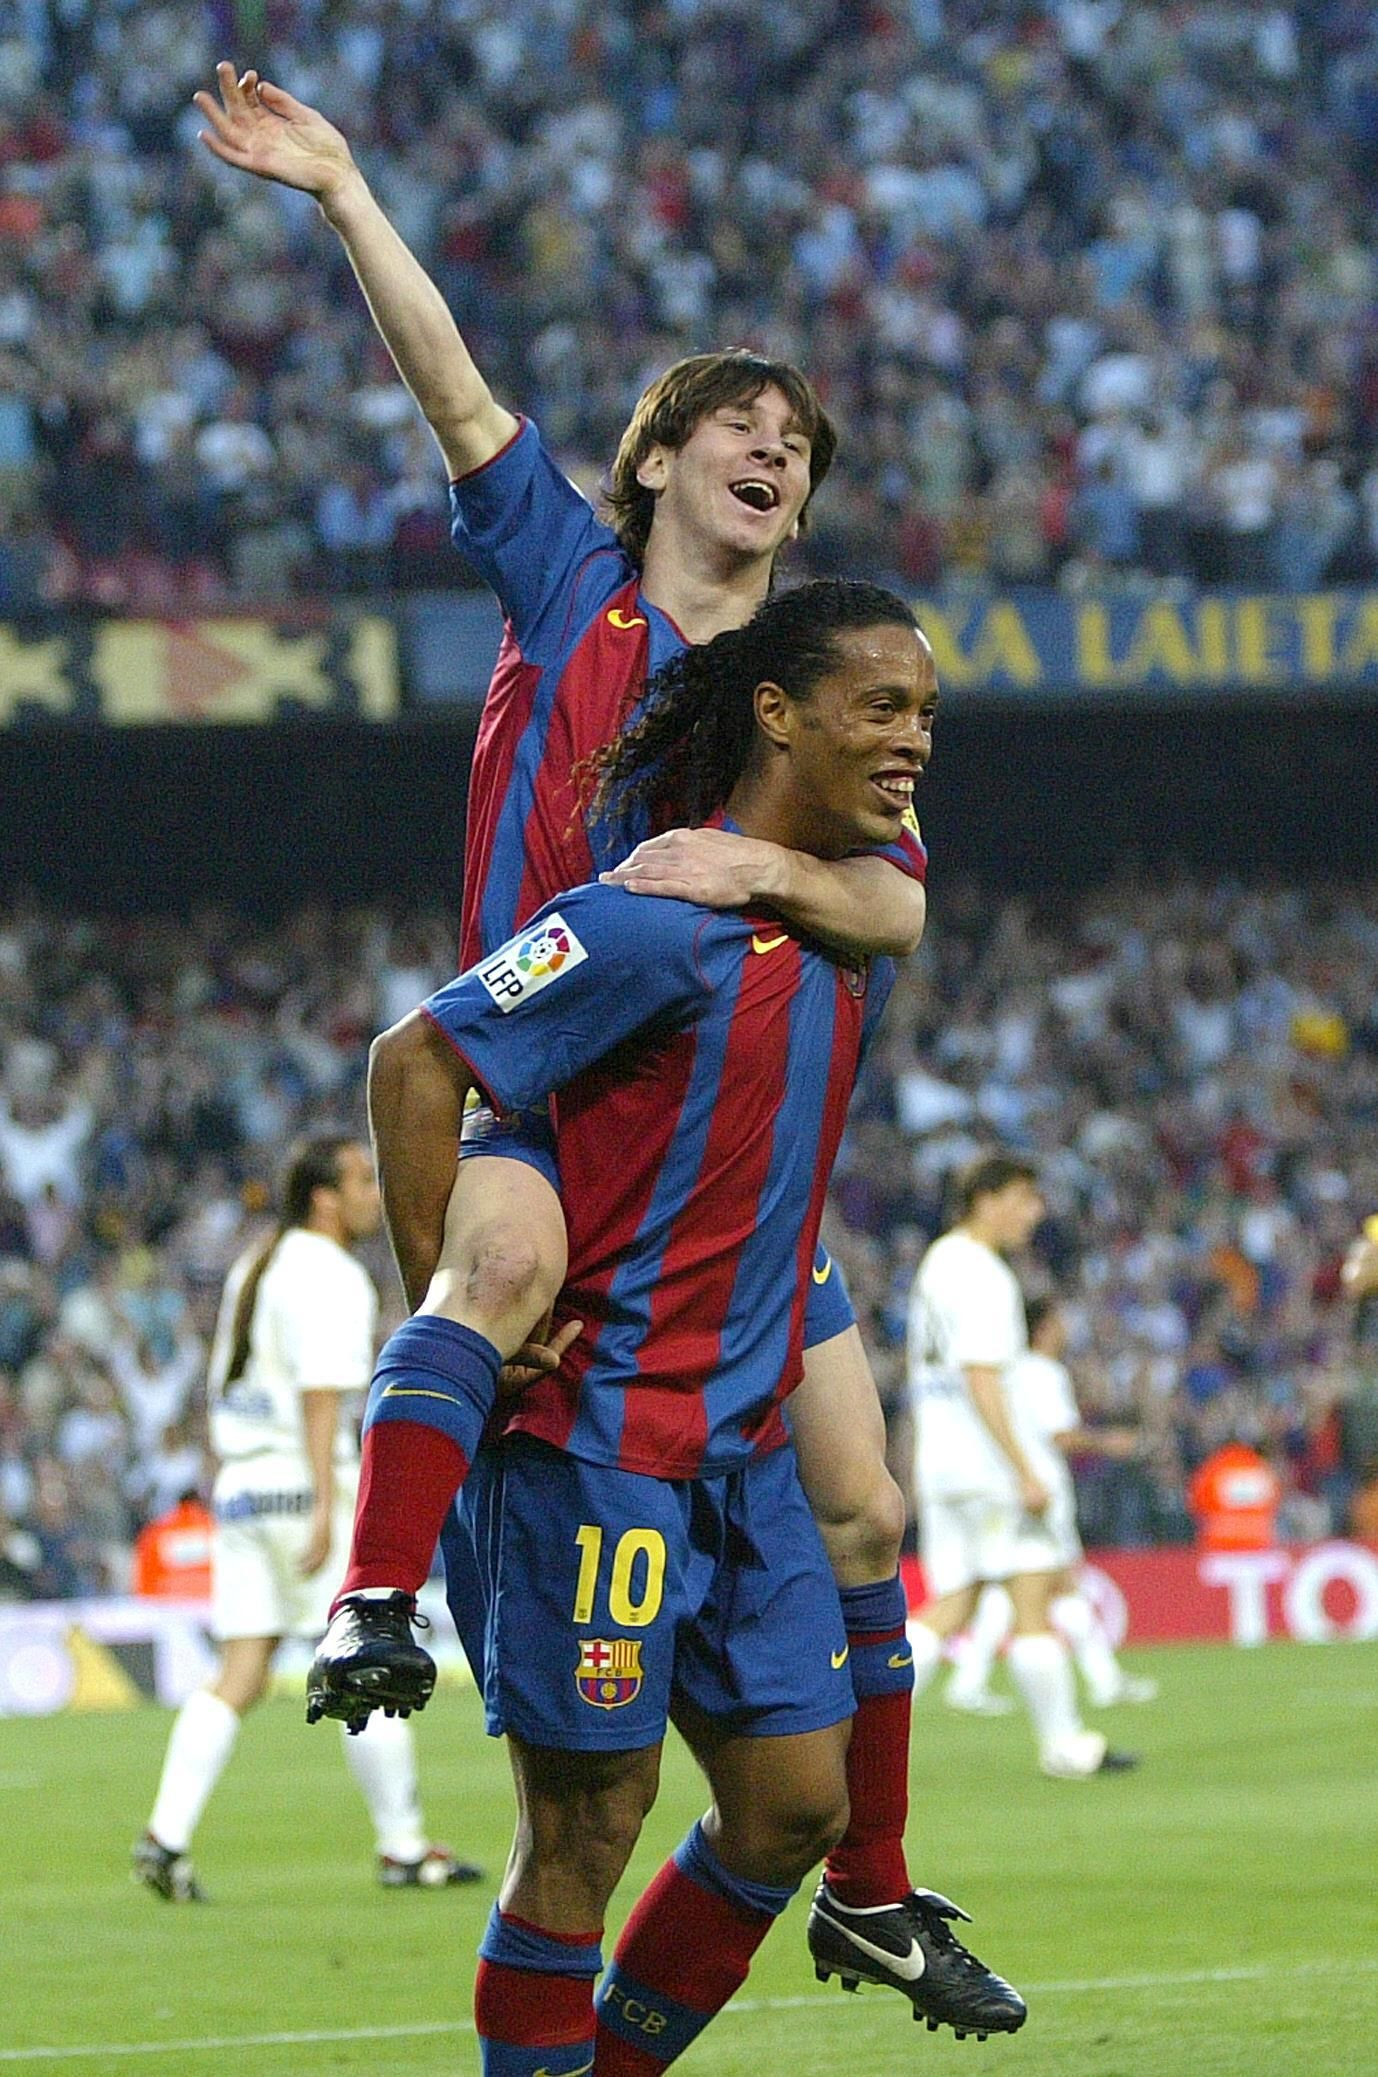 Messi Celebra Su Primer Gol Luego De Una Asistencia Del Mas Grande Ronaldinho Messi Celebrates His First Goal After A Great Pass By Ronaldinho